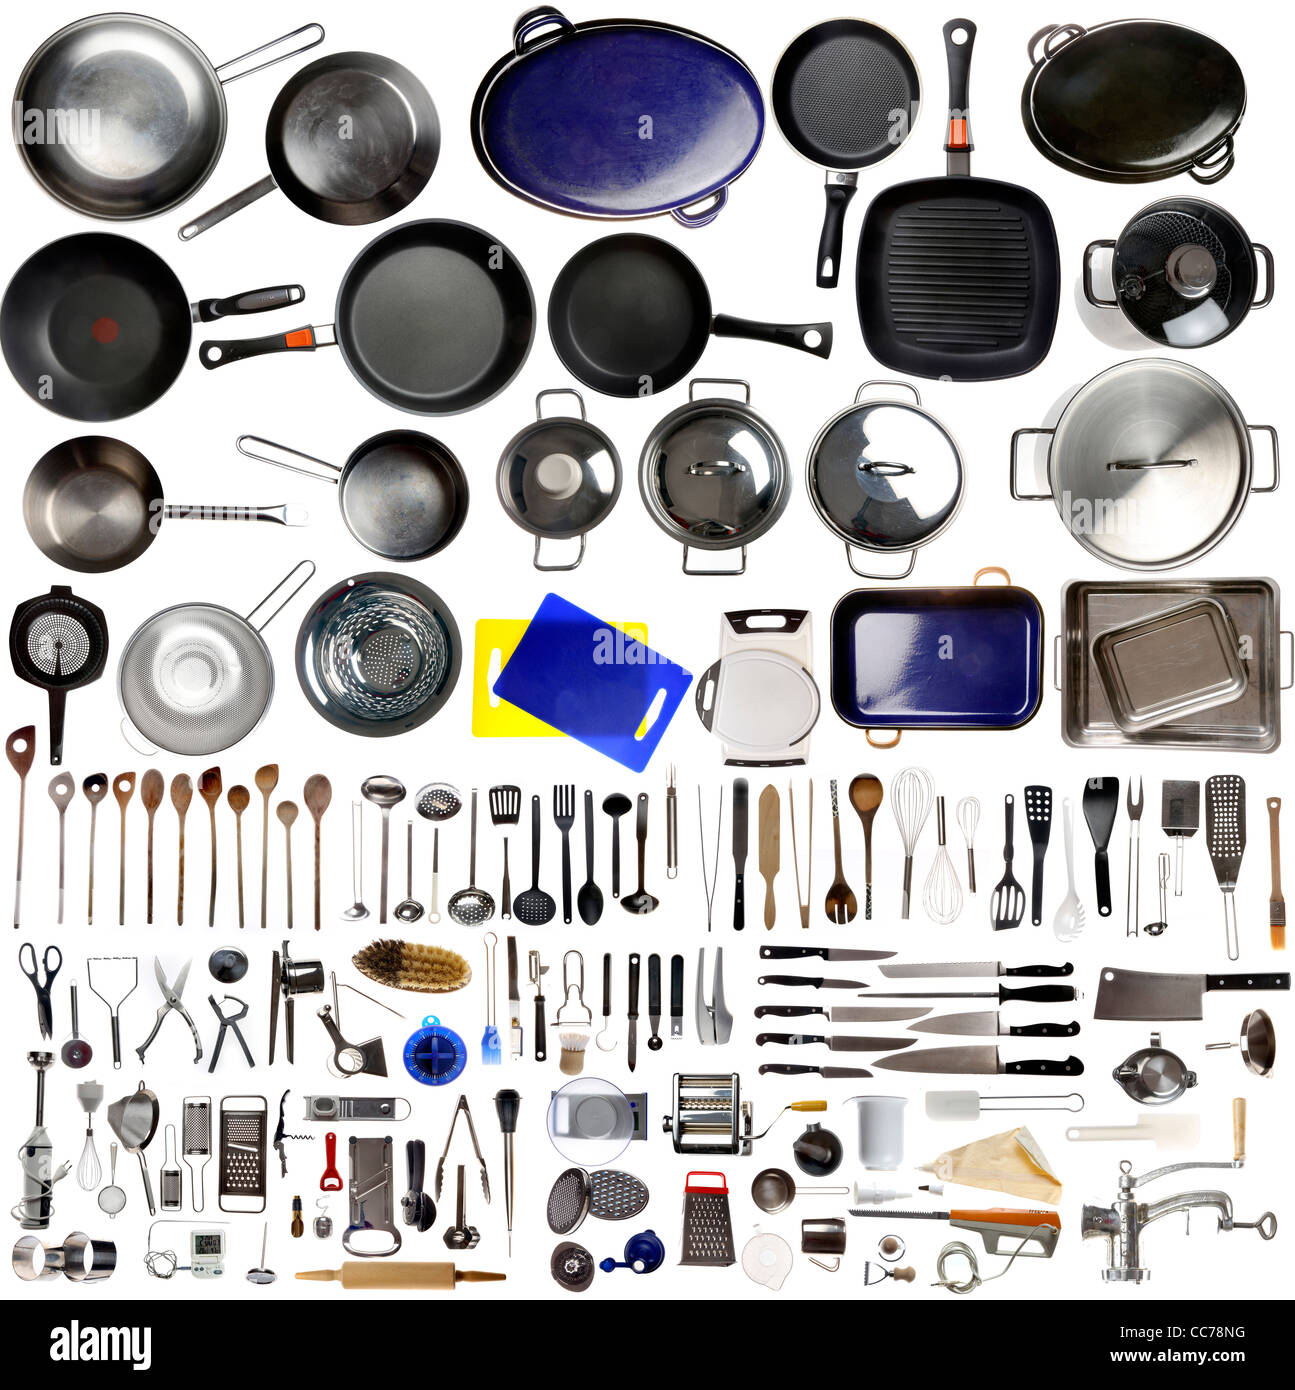 Compilation Of Various Kitchen Utensils, Kitchen Tools.